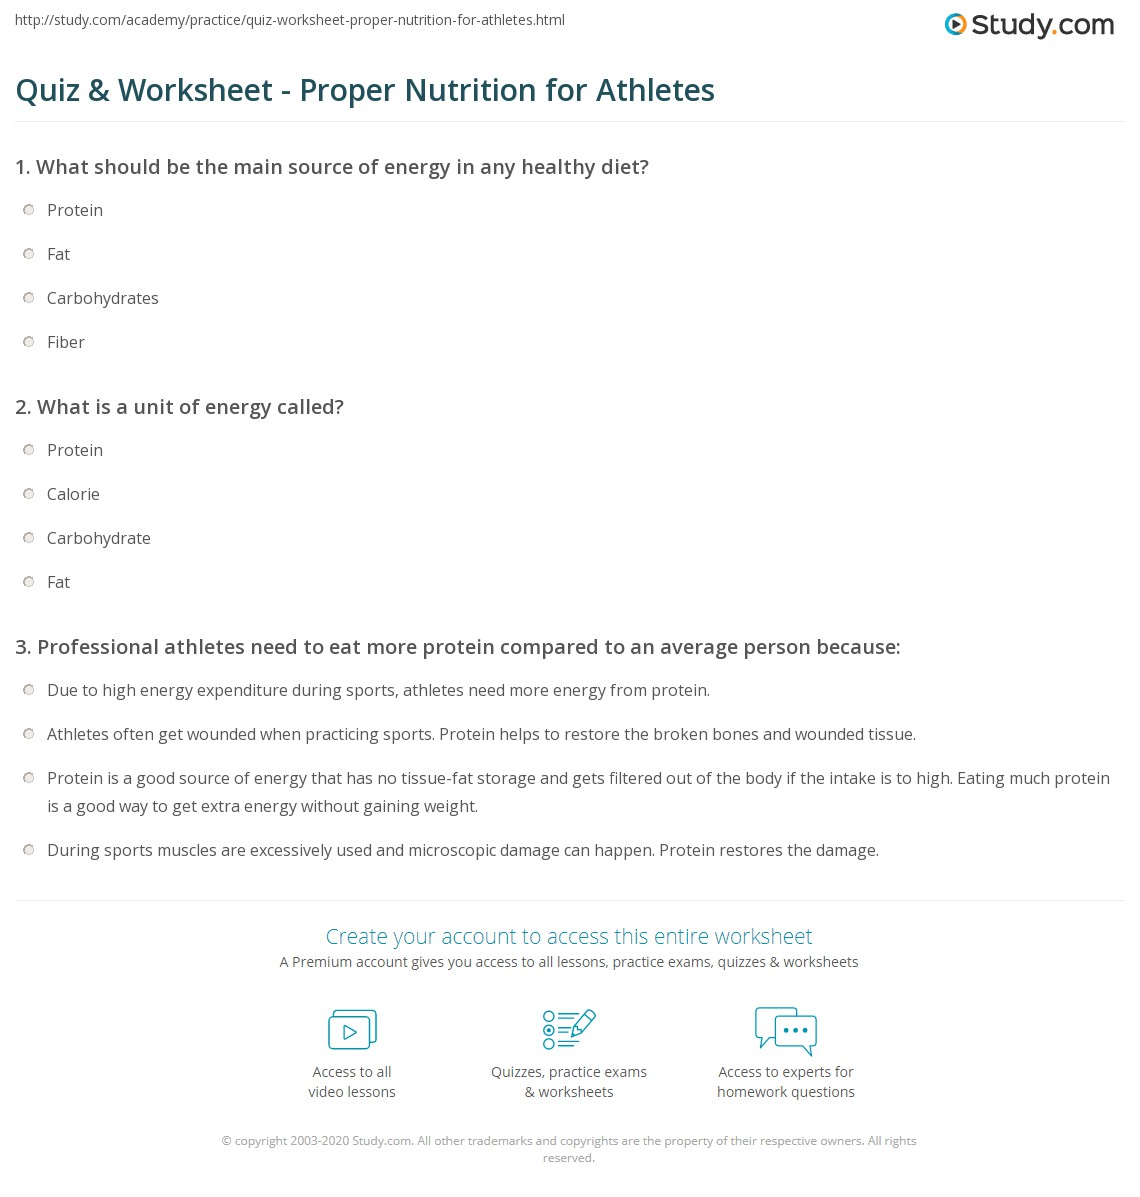 Quiz & Worksheet - Proper Nutrition for Athletes | Study.com